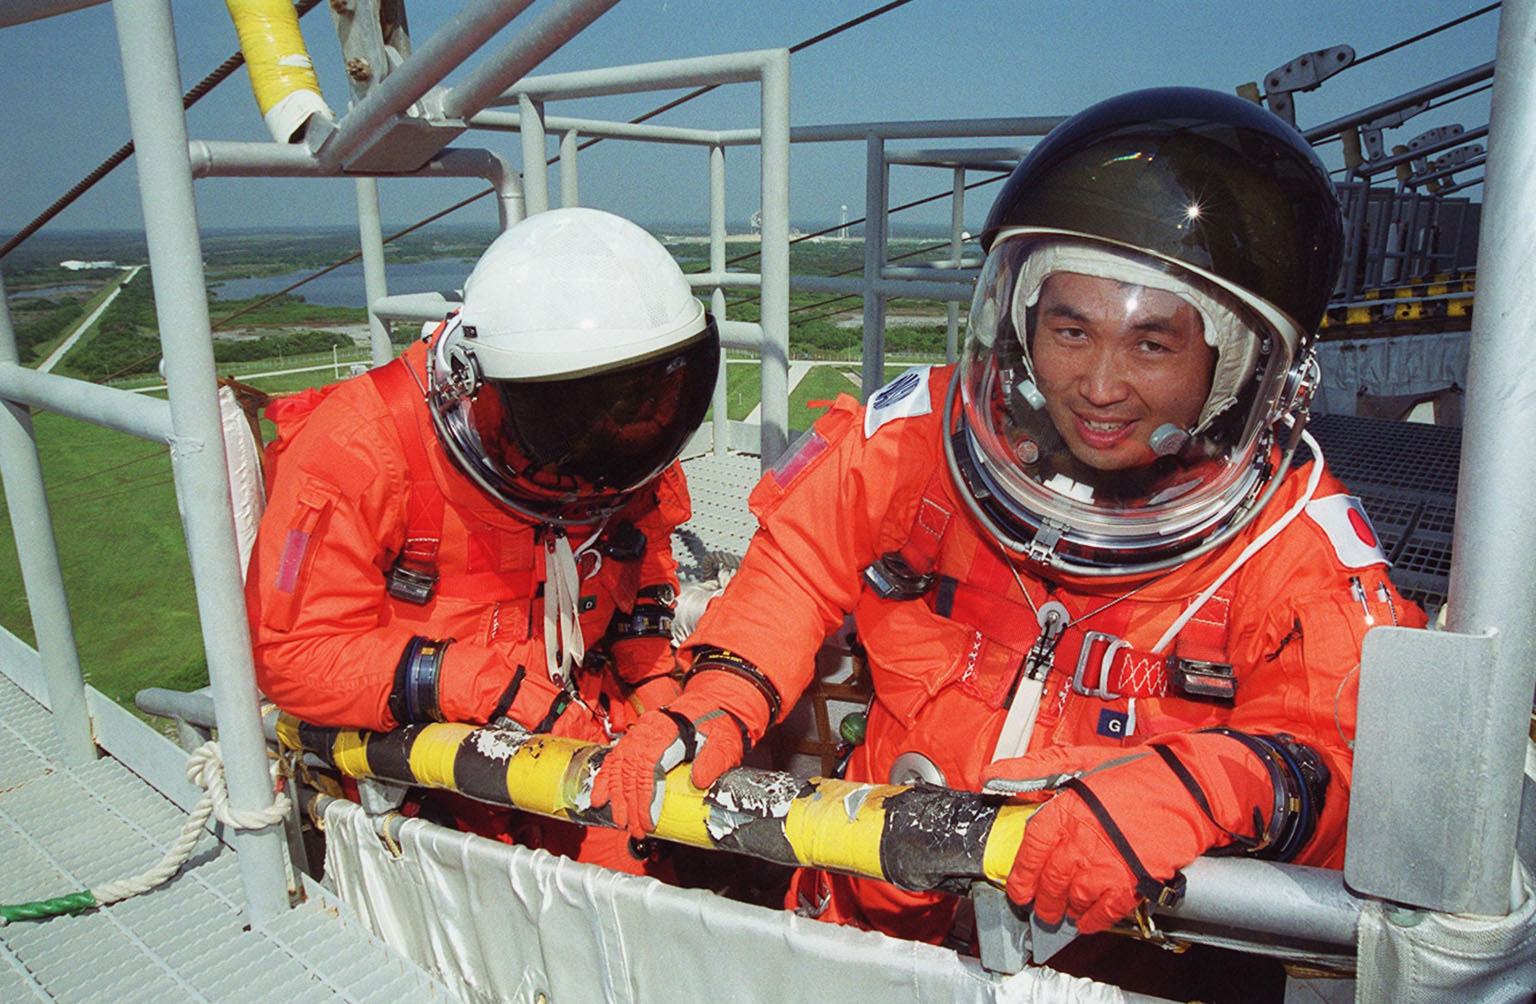 KENNEDY SPACE CENTER, FLA. -- On the 195-foot level of the Fixed Service Structure on Launch Pad 39A, STS-92 Mission Specialists William S. McArthur Jr. (left) and Koichi Wakata of Japan test the slidewire basket that they are in. They and other crew members are taking part in emergency egress training, one of the Terminal Countdown Demonstration Test activities that also include a simulated countdown. STS-92 is scheduled to launch Oct. 5 at 9:38 p.m. EDT on the fifth flight to the International Space Station. It will carry two elements of the Space Station, the Integrated Truss Structure Z1 and the third Pressurized Mating Adapter. The mission is also the 100th flight in the Shuttle program